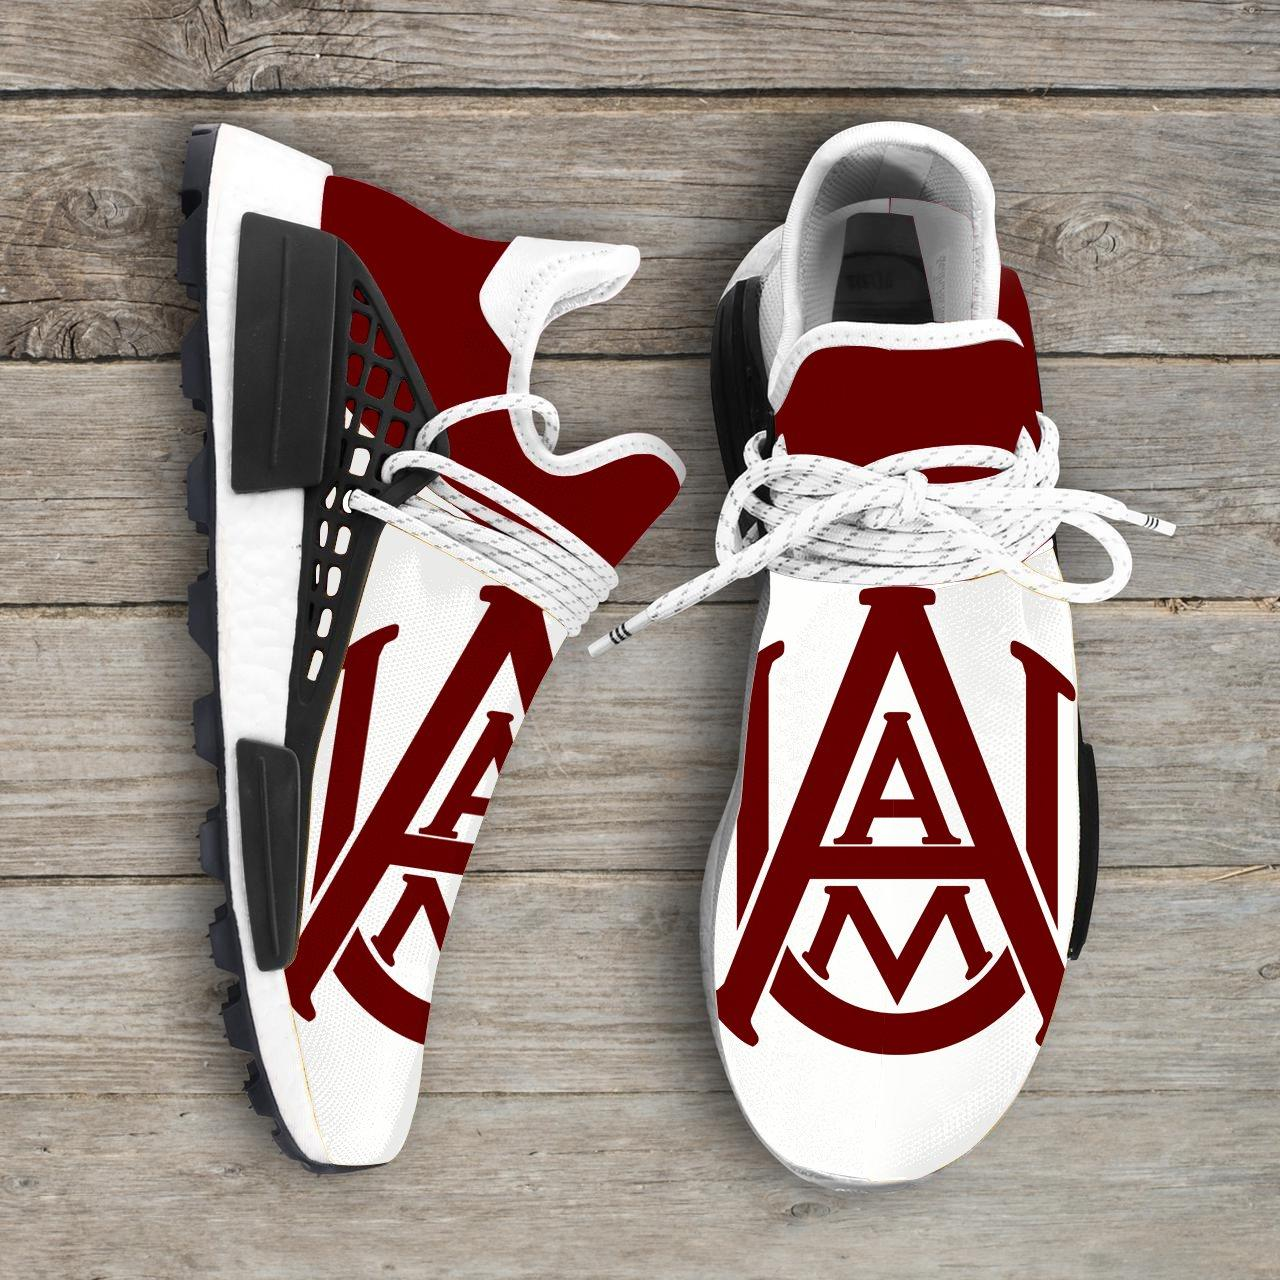 Alabama A&M Bulldog NCAA NMD Human Race Sneakers Sport Shoes Shoes 2020